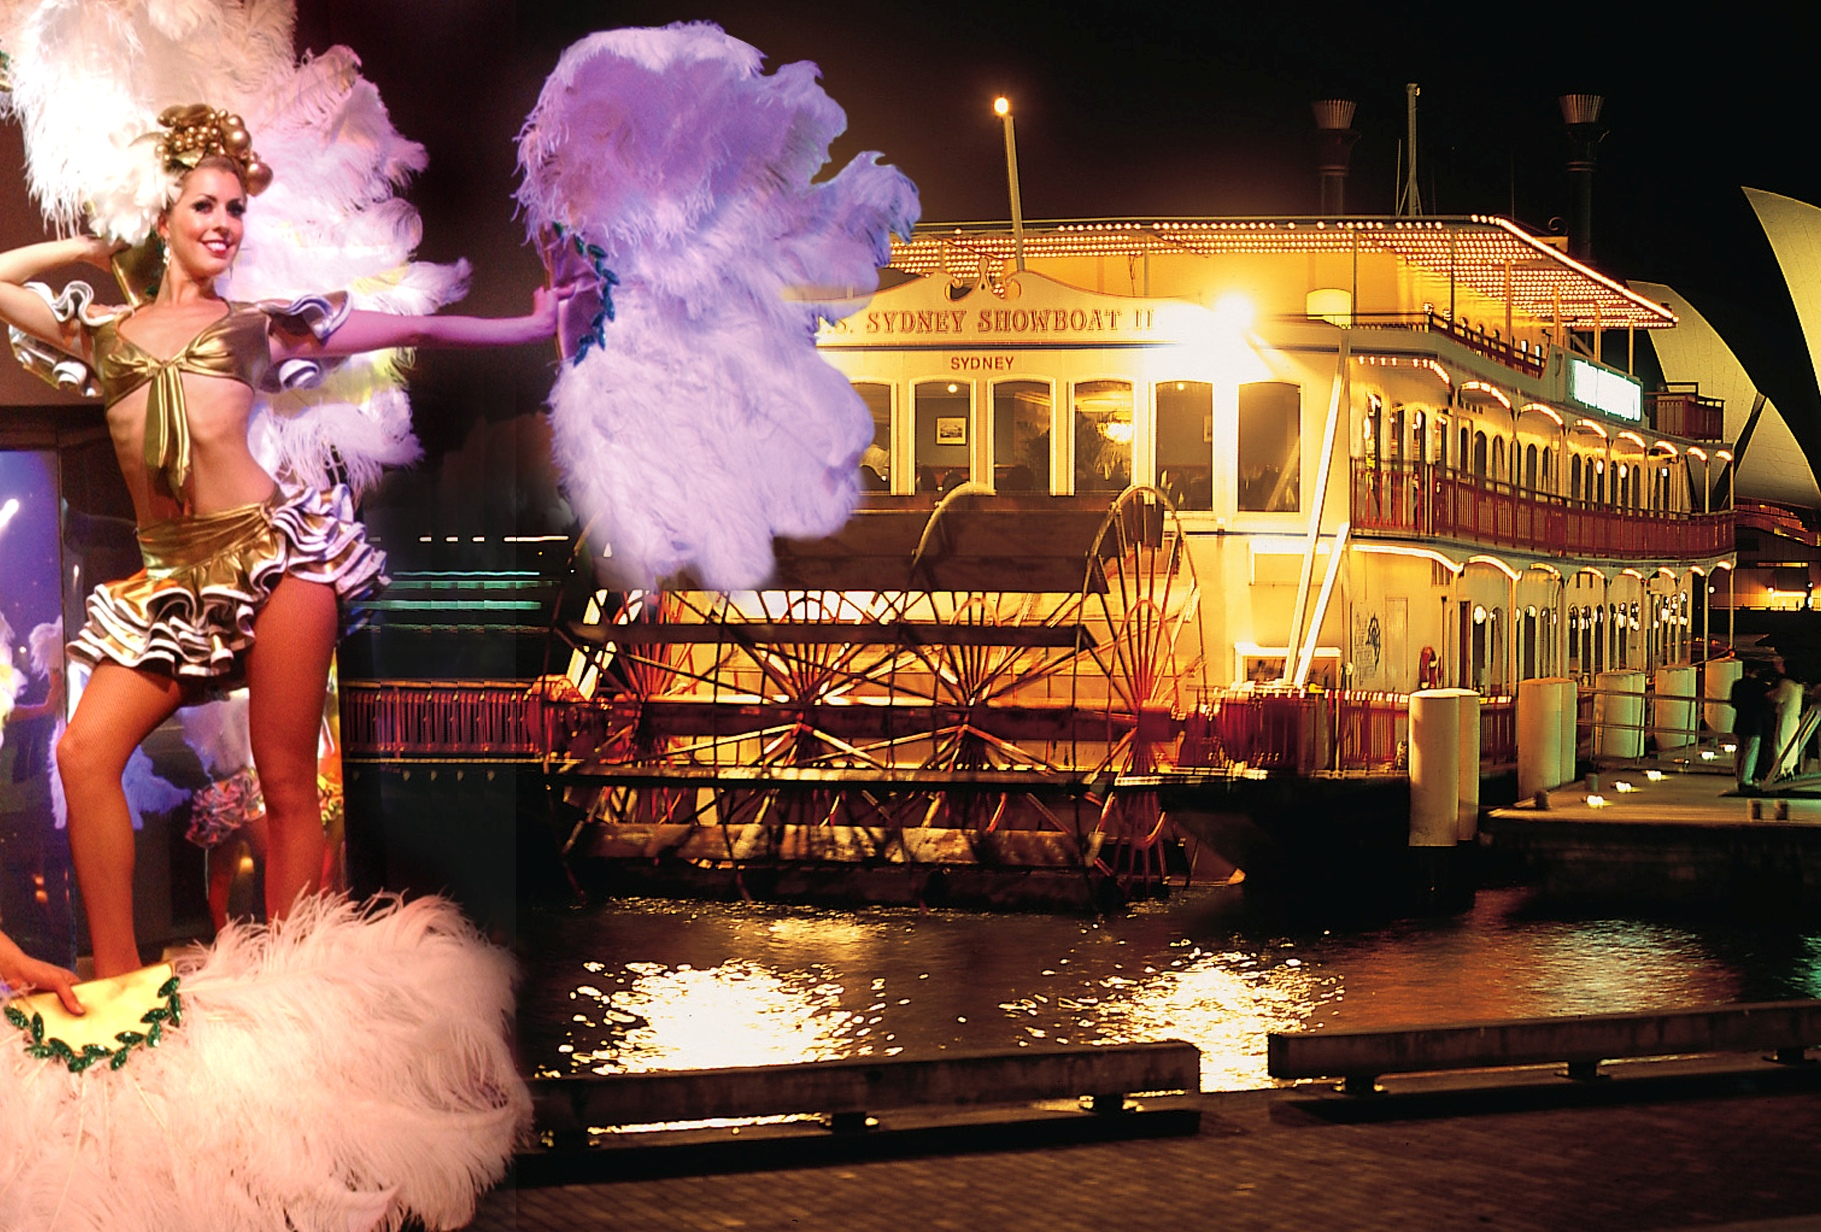 Nov 14, · Sydney Showboats has delighted over 6 million guests since with its daily Sydney Harbour dinner cruise that culminates in a spectacular cabaret show by an all-Australian cast/5().